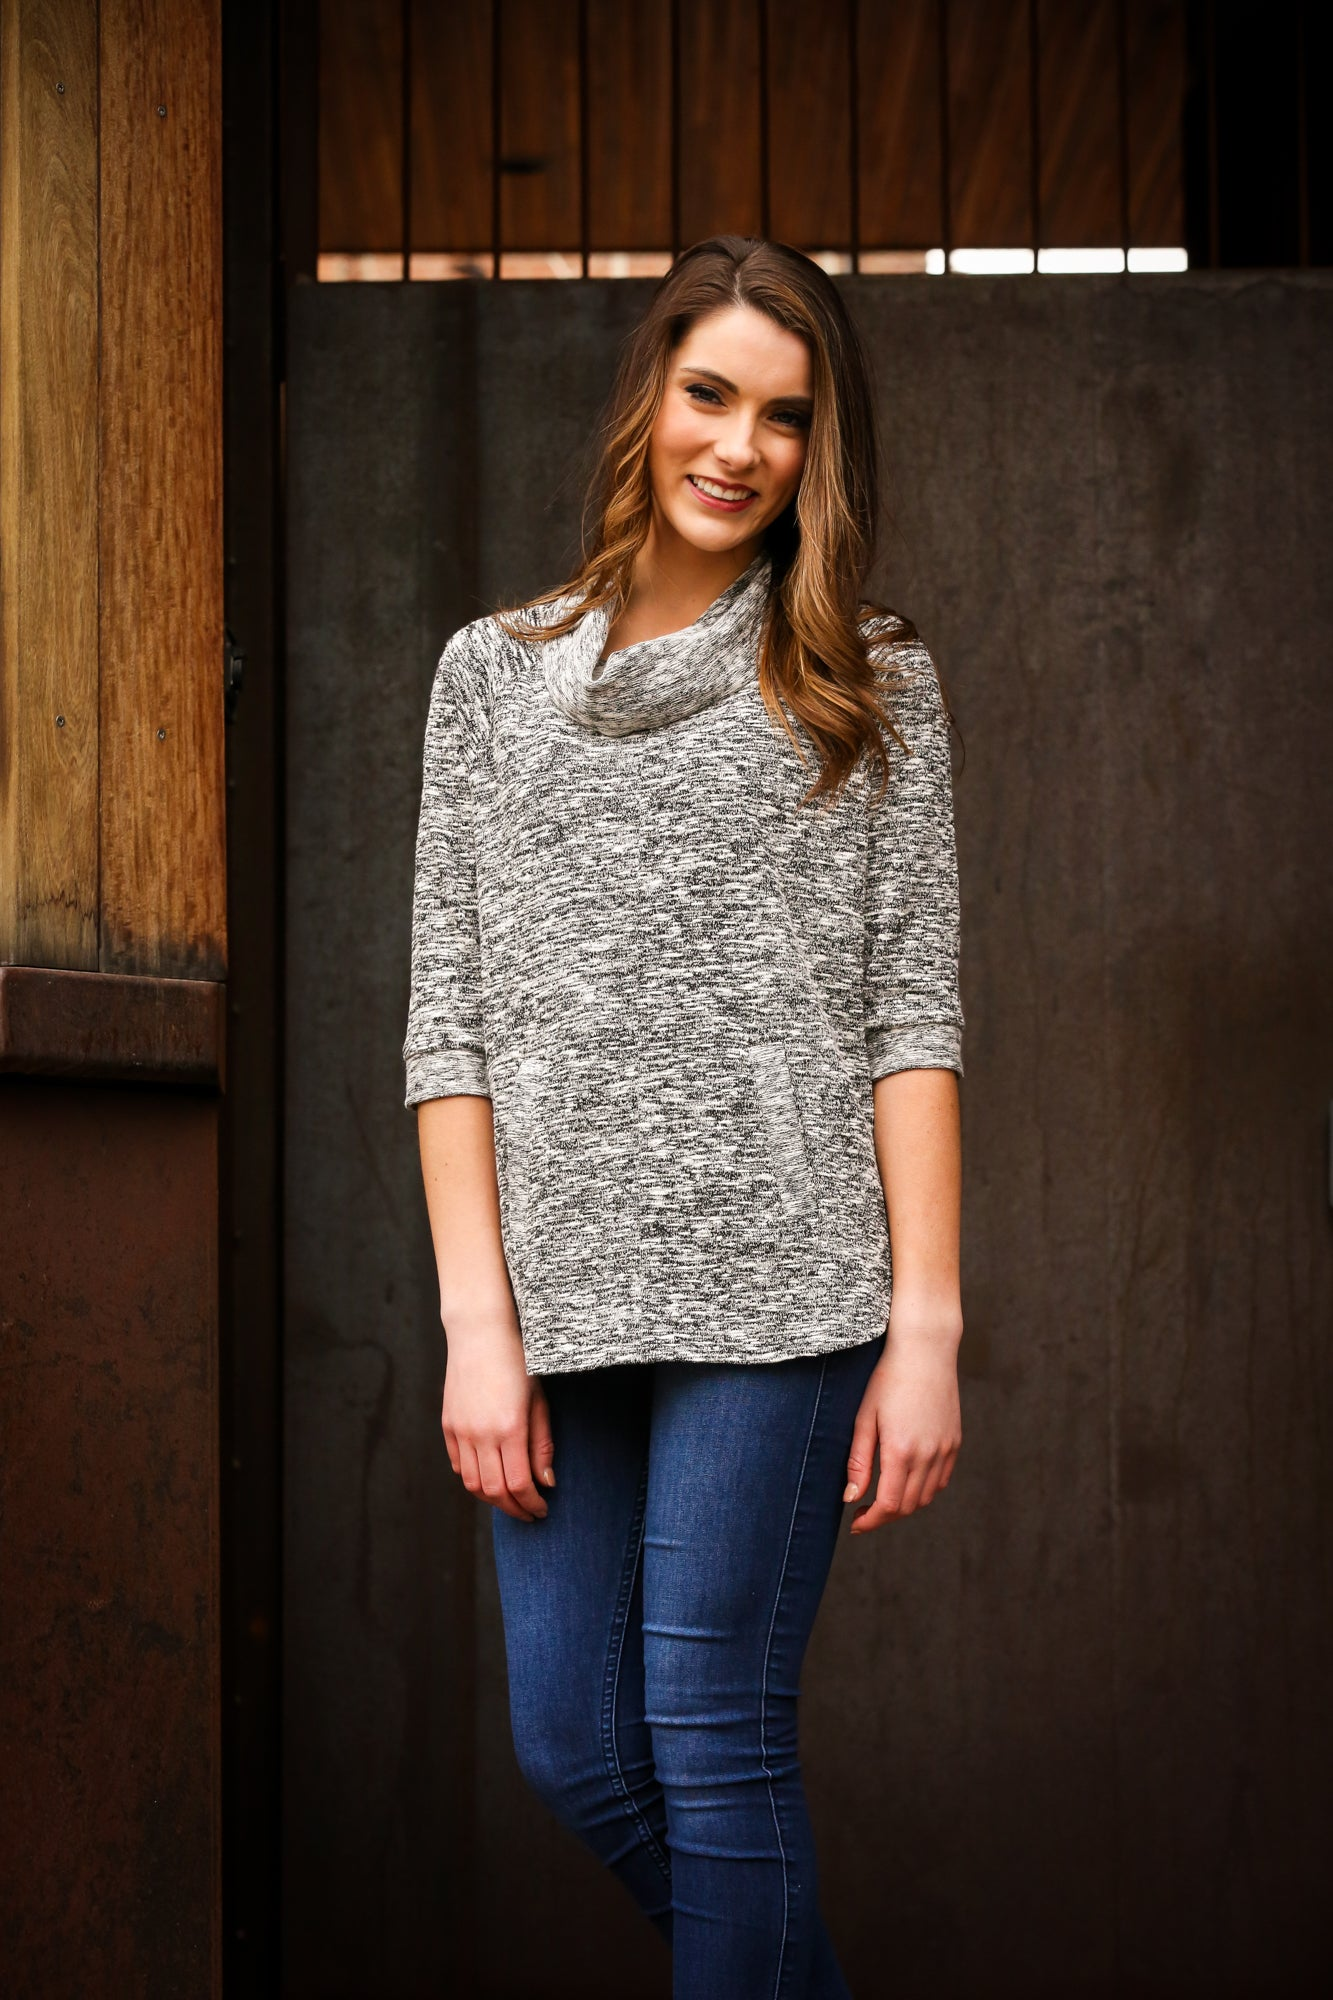 Cowl Neck Sweater Top with Slub Fabric